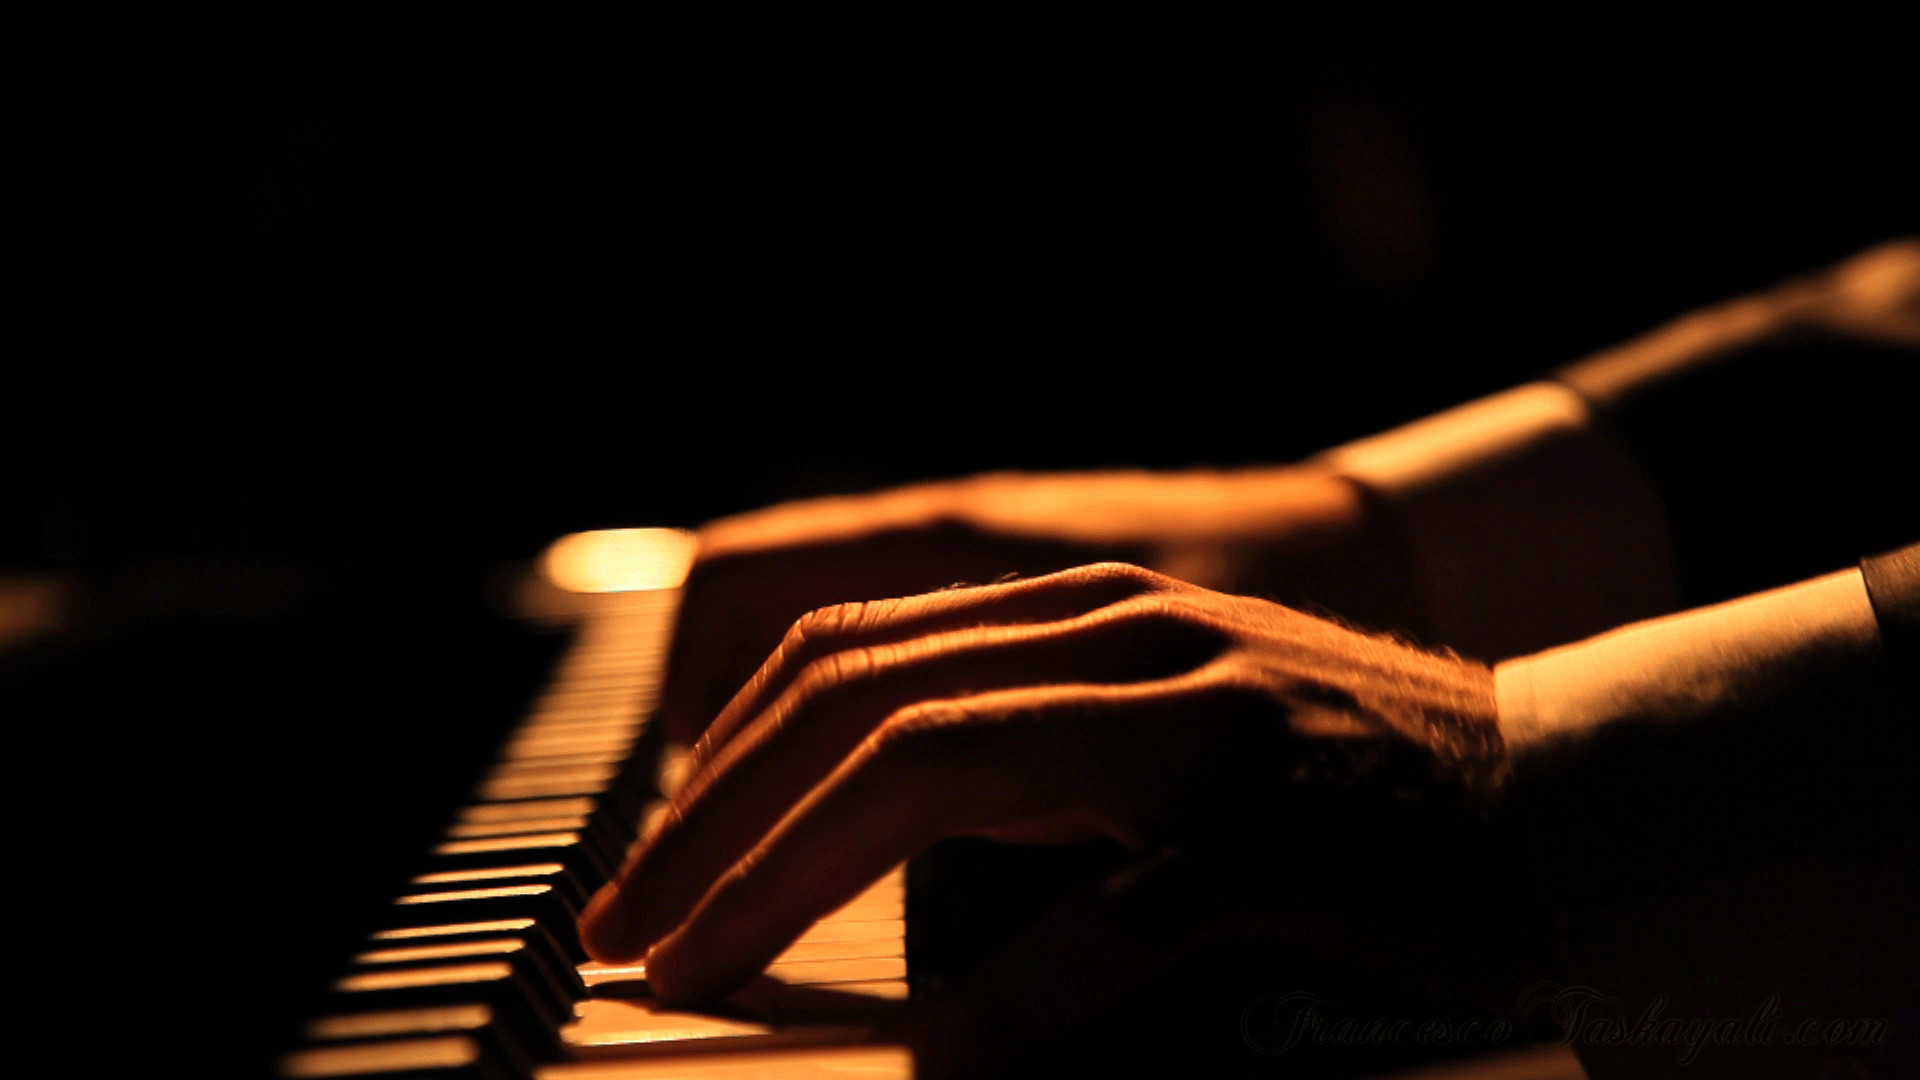 1920x1080 Wallpapers For Classical Music Piano Wallpaper